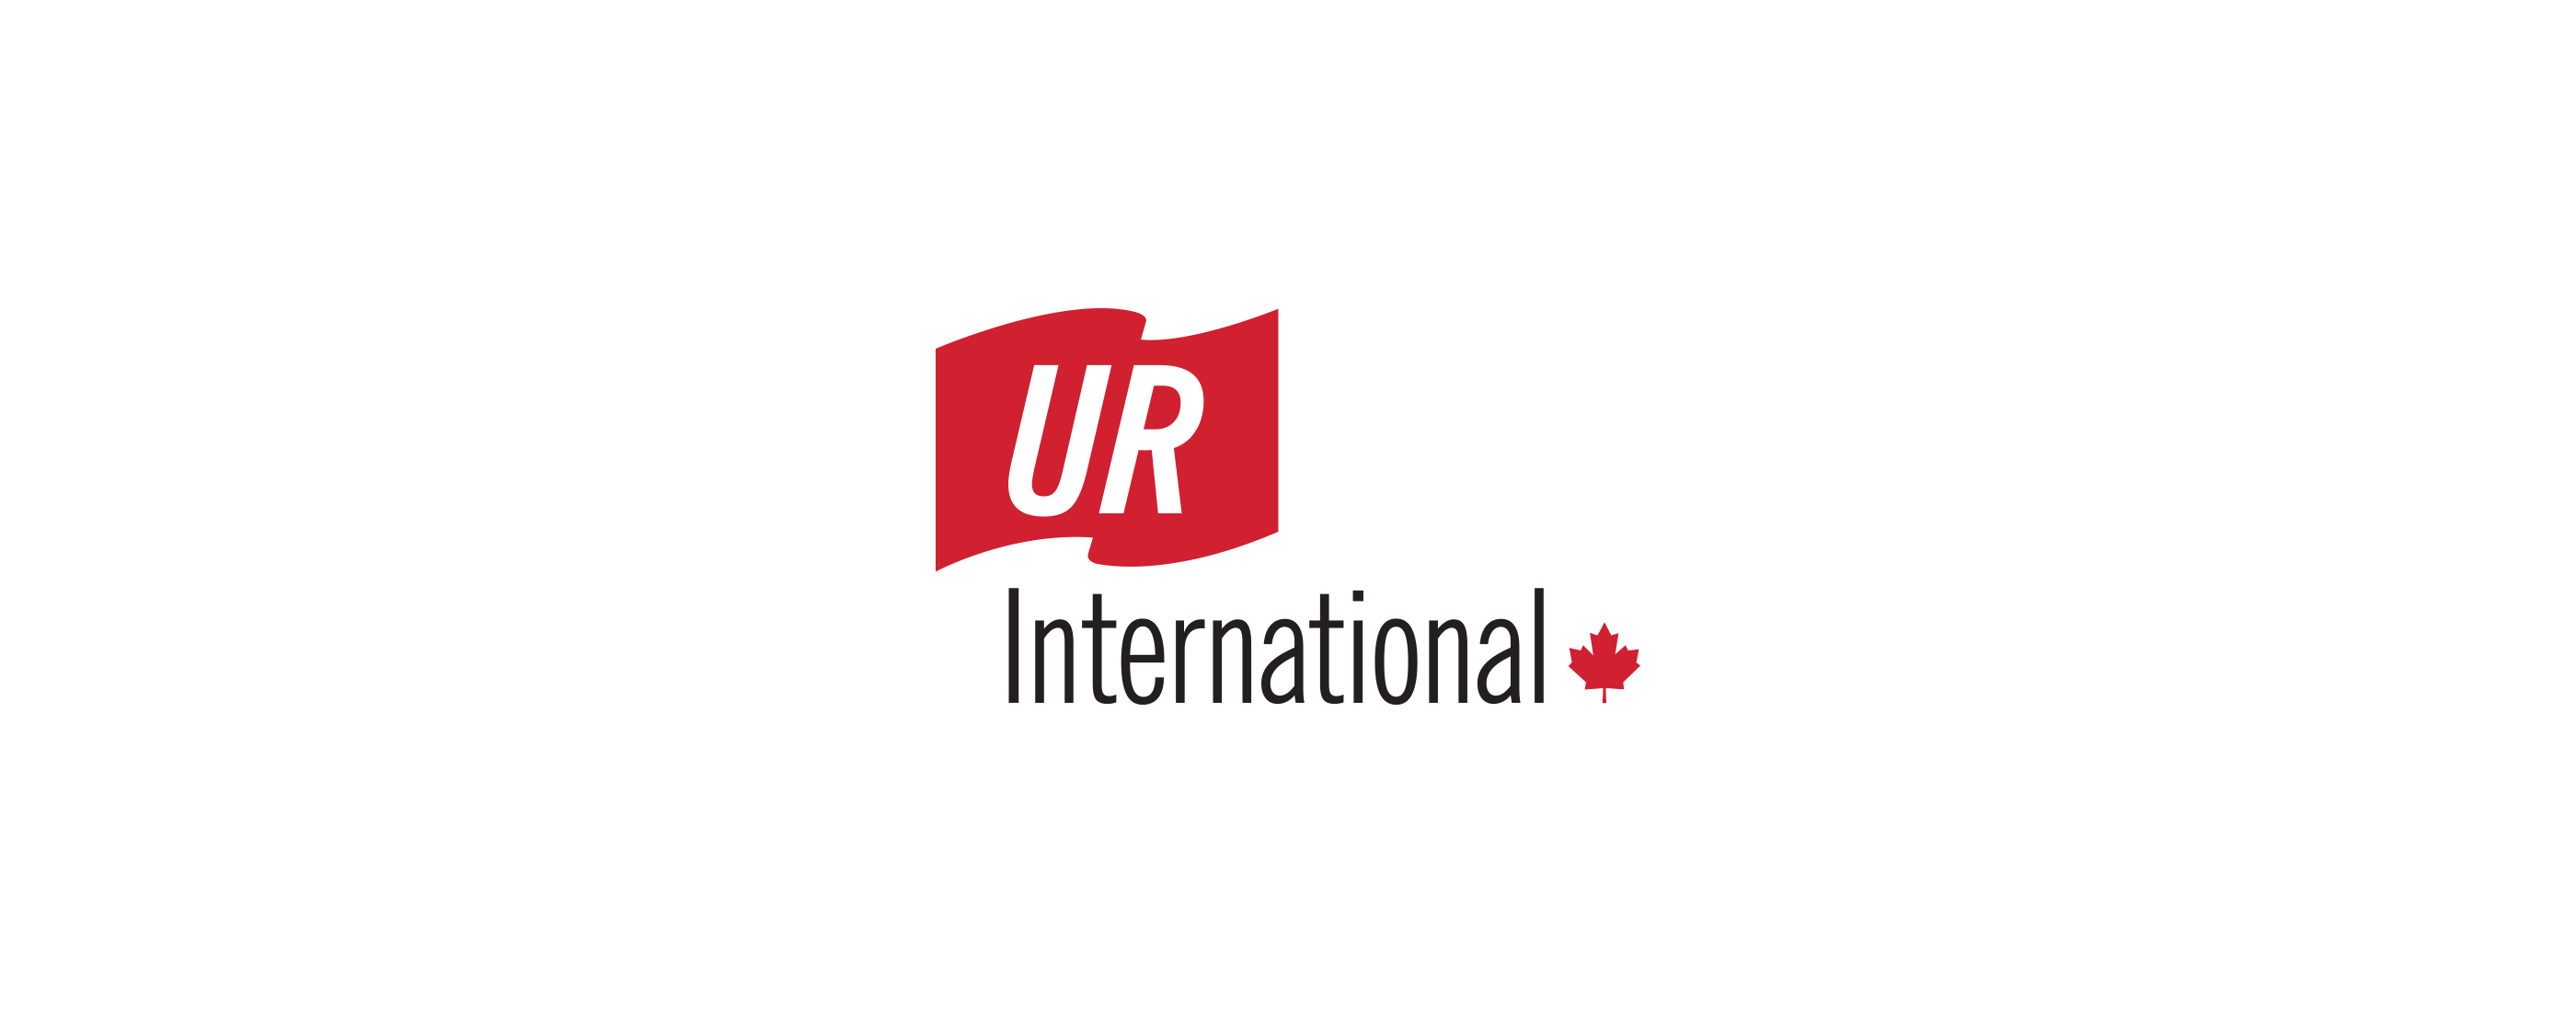 University of Regina International - Logo